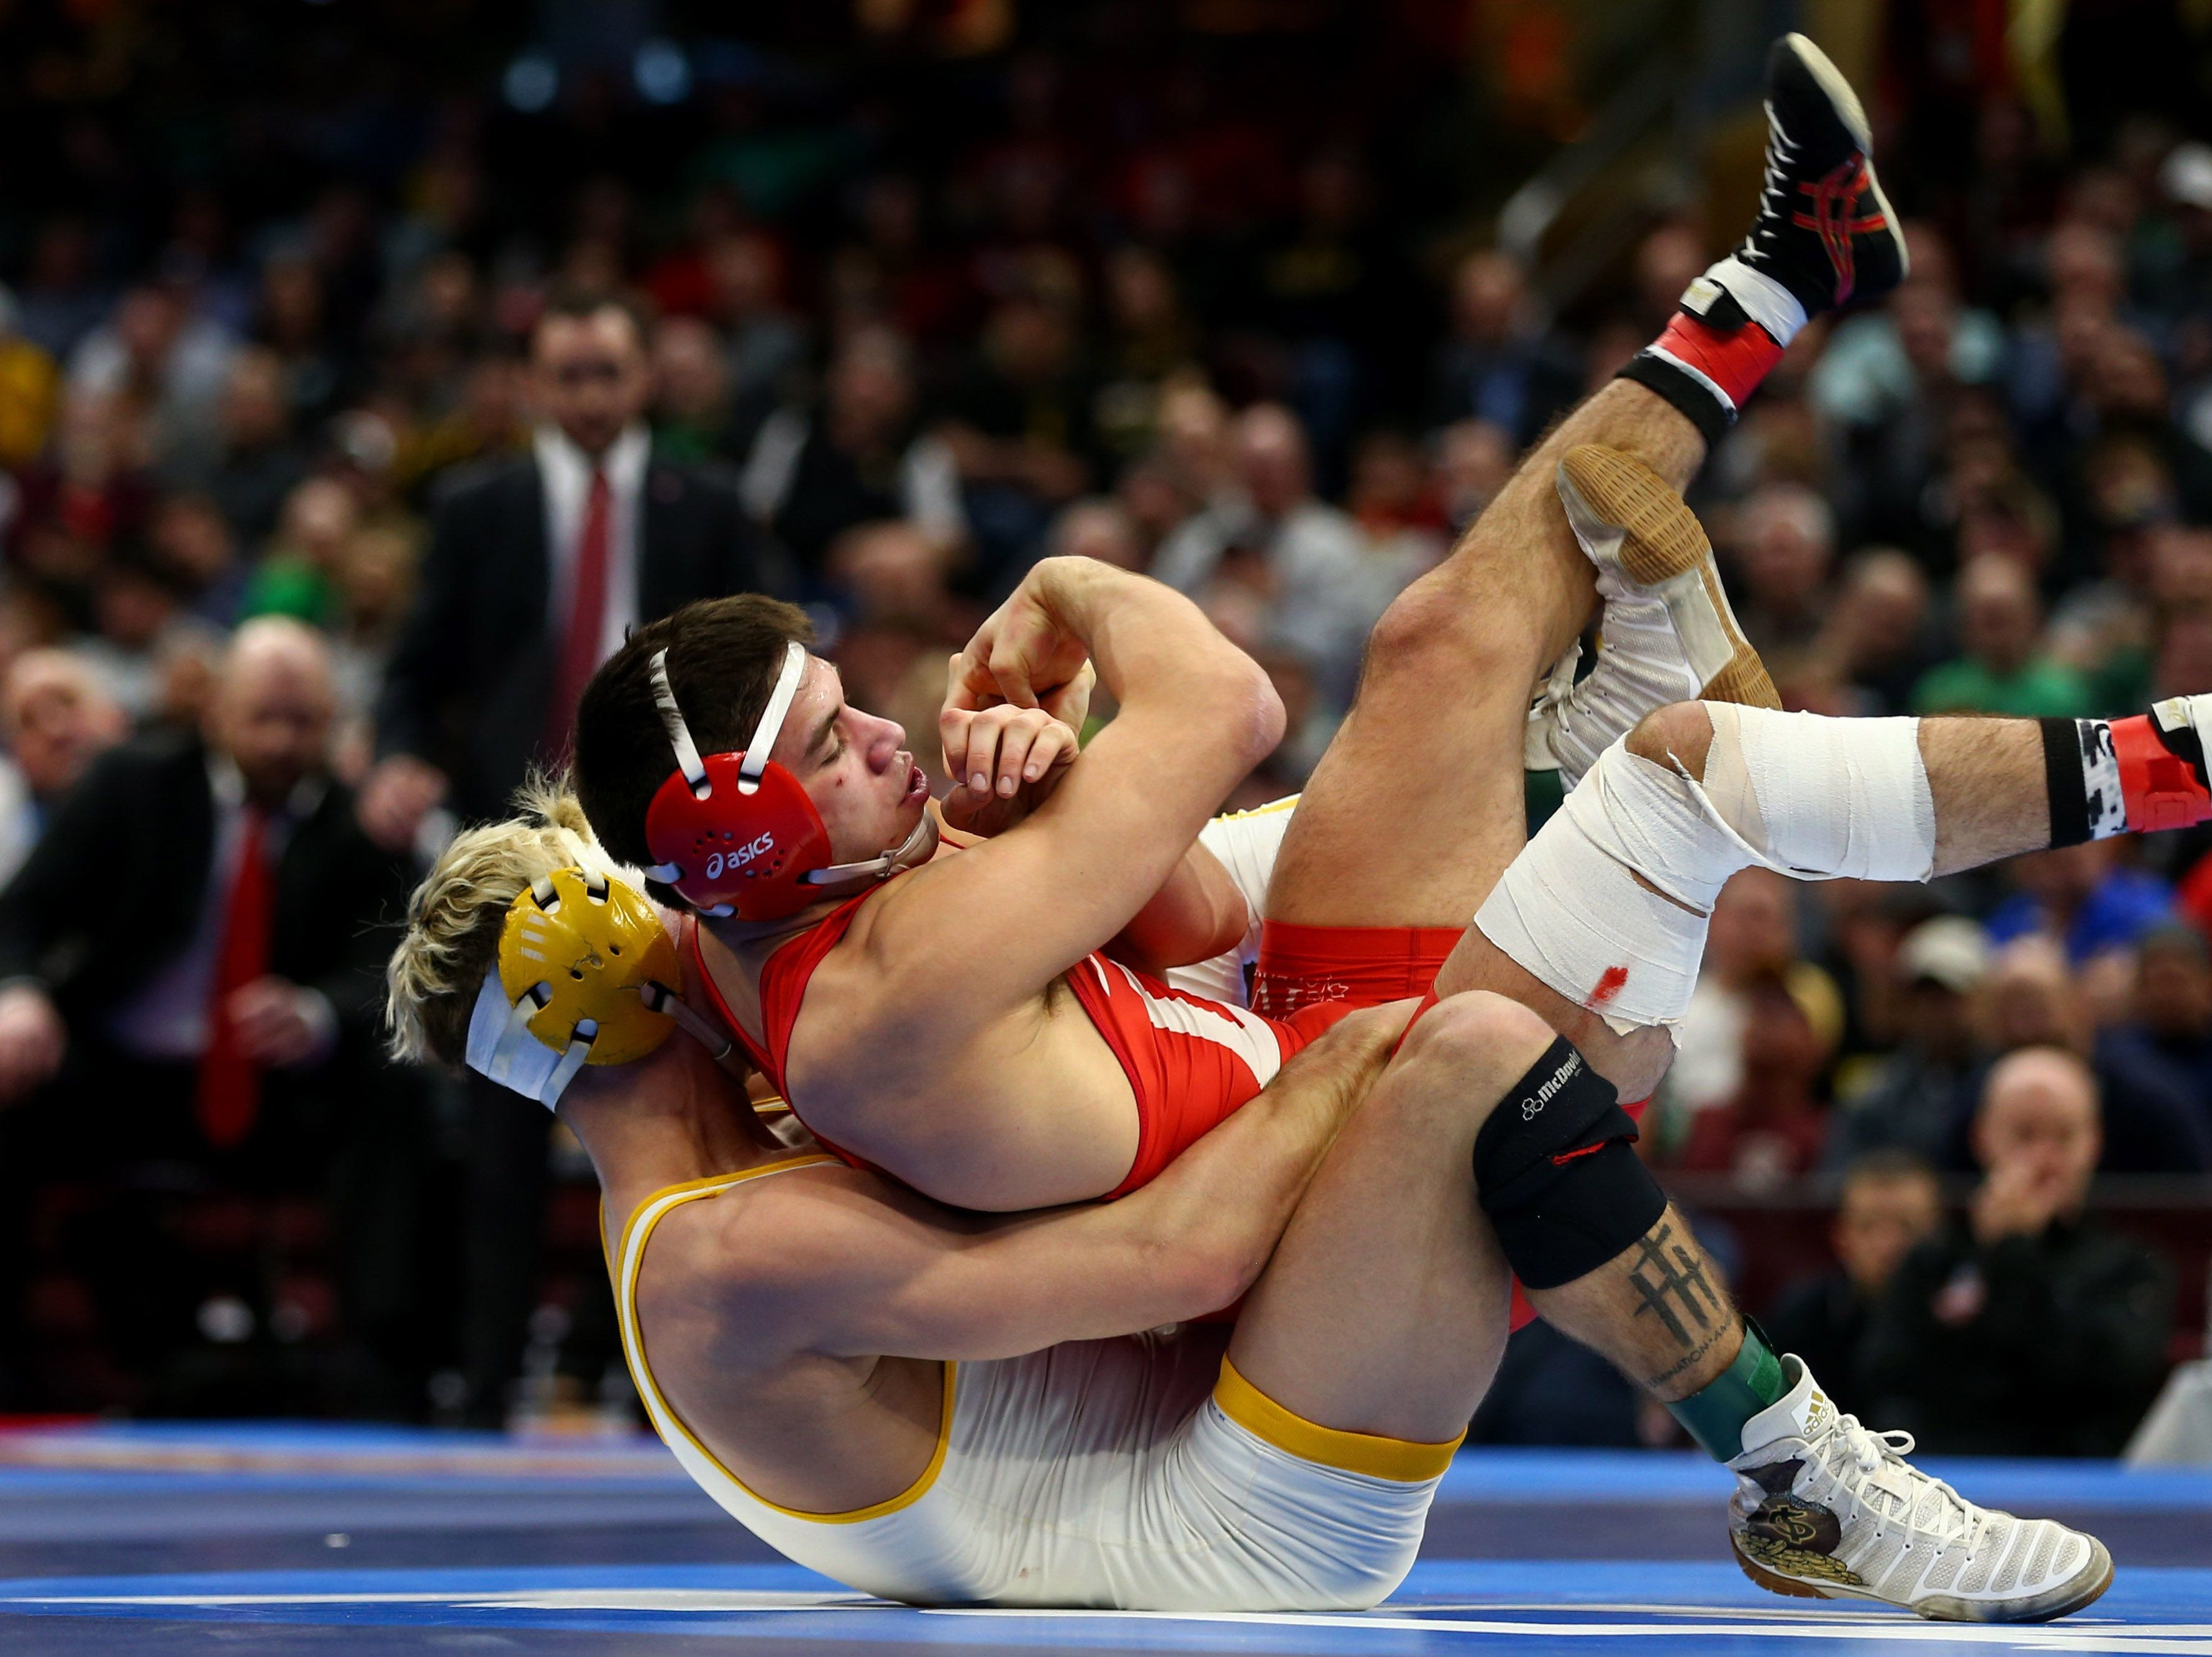 Wyoming  wrestler Bryce Meredith, white, competes against Cornell wrester Yianni Diakomihalis during the NCAA Wrestling DI Wrestling Championships at Quicken Loans Arena.  Photos by Aaron Doster/USA TODAY Sports Mar 17, 2018; Cleveland, OH, USA; Wyoming Cowboys wrestler Bryce Meredith (white) competes against Cornell wrester Yianni Diakomihalis (red) during the NCAA Wrestling DI Wrestling Championships at Quicken Loans Arena. Mandatory Credit: Aaron Doster-USA TODAY Sports